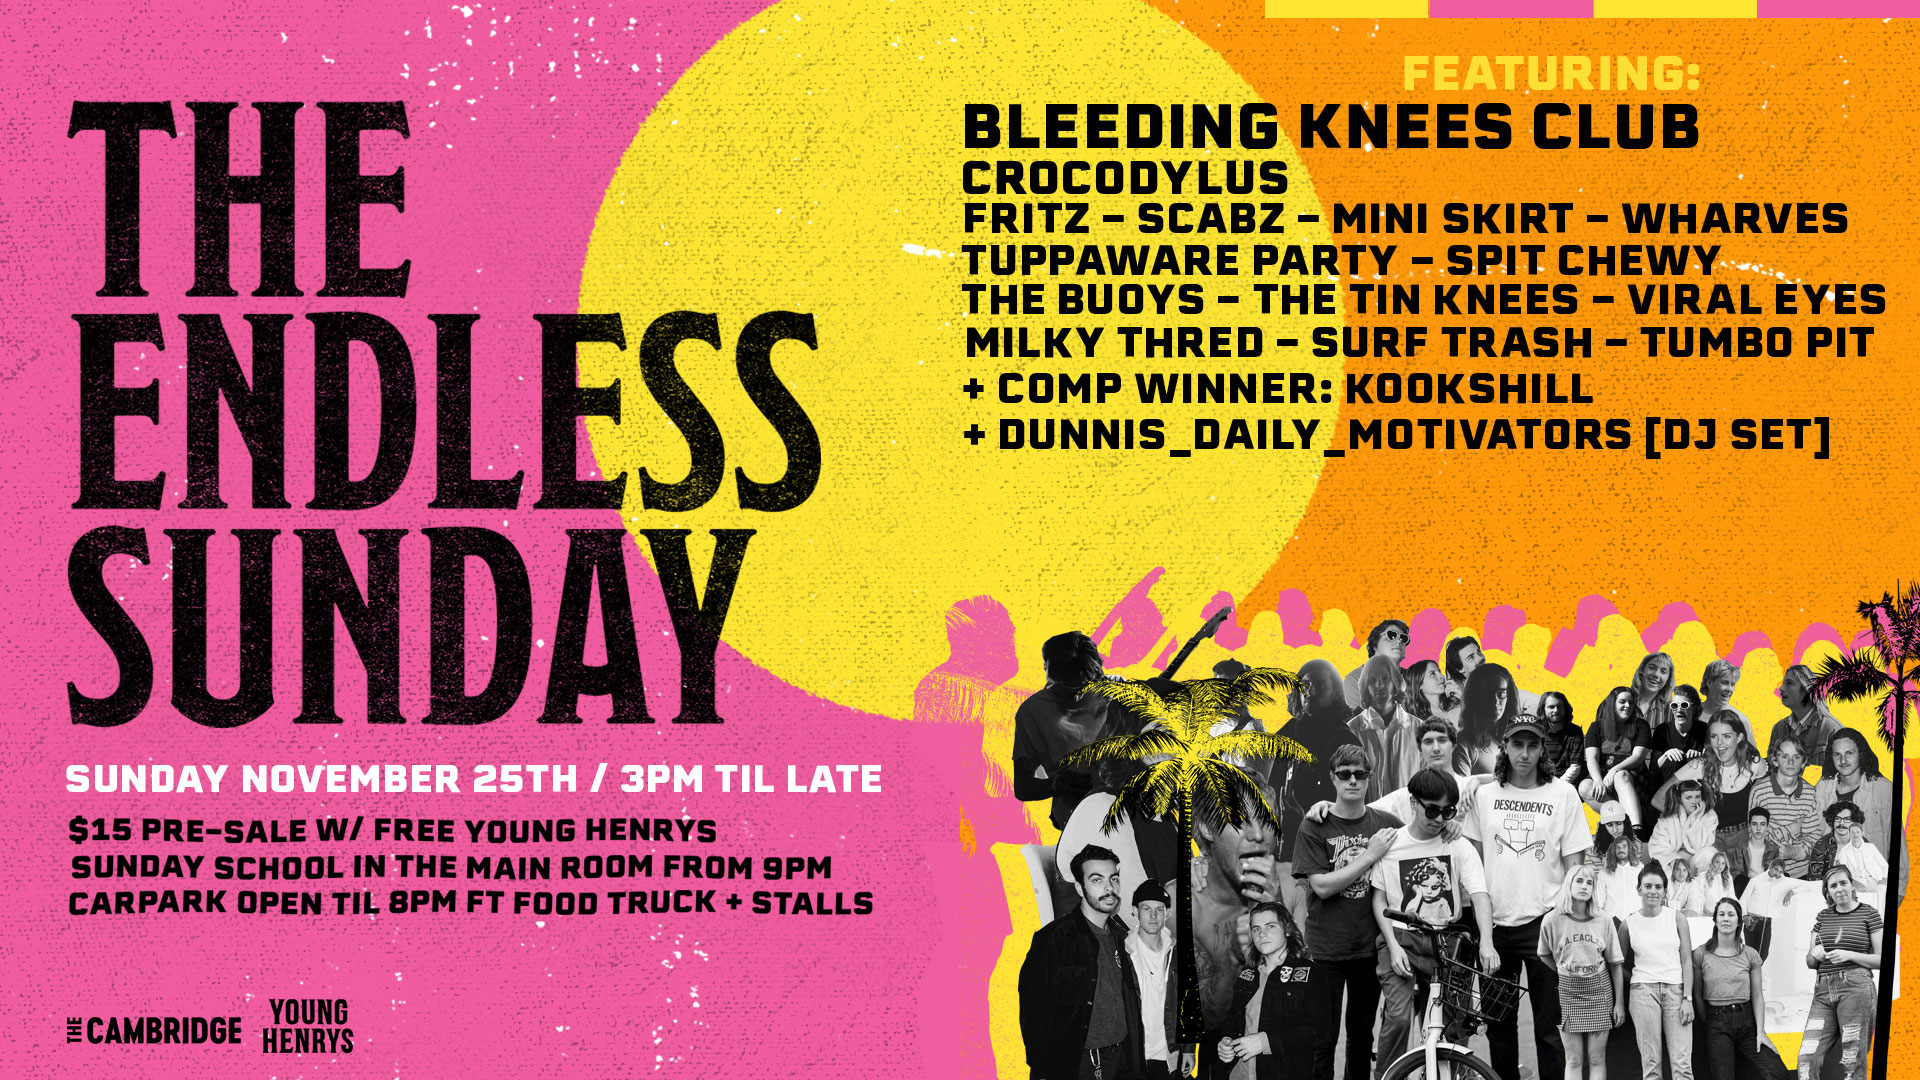 Tickets for THE ENDLESS SUNDAY in Newcastle from Ticketbooth